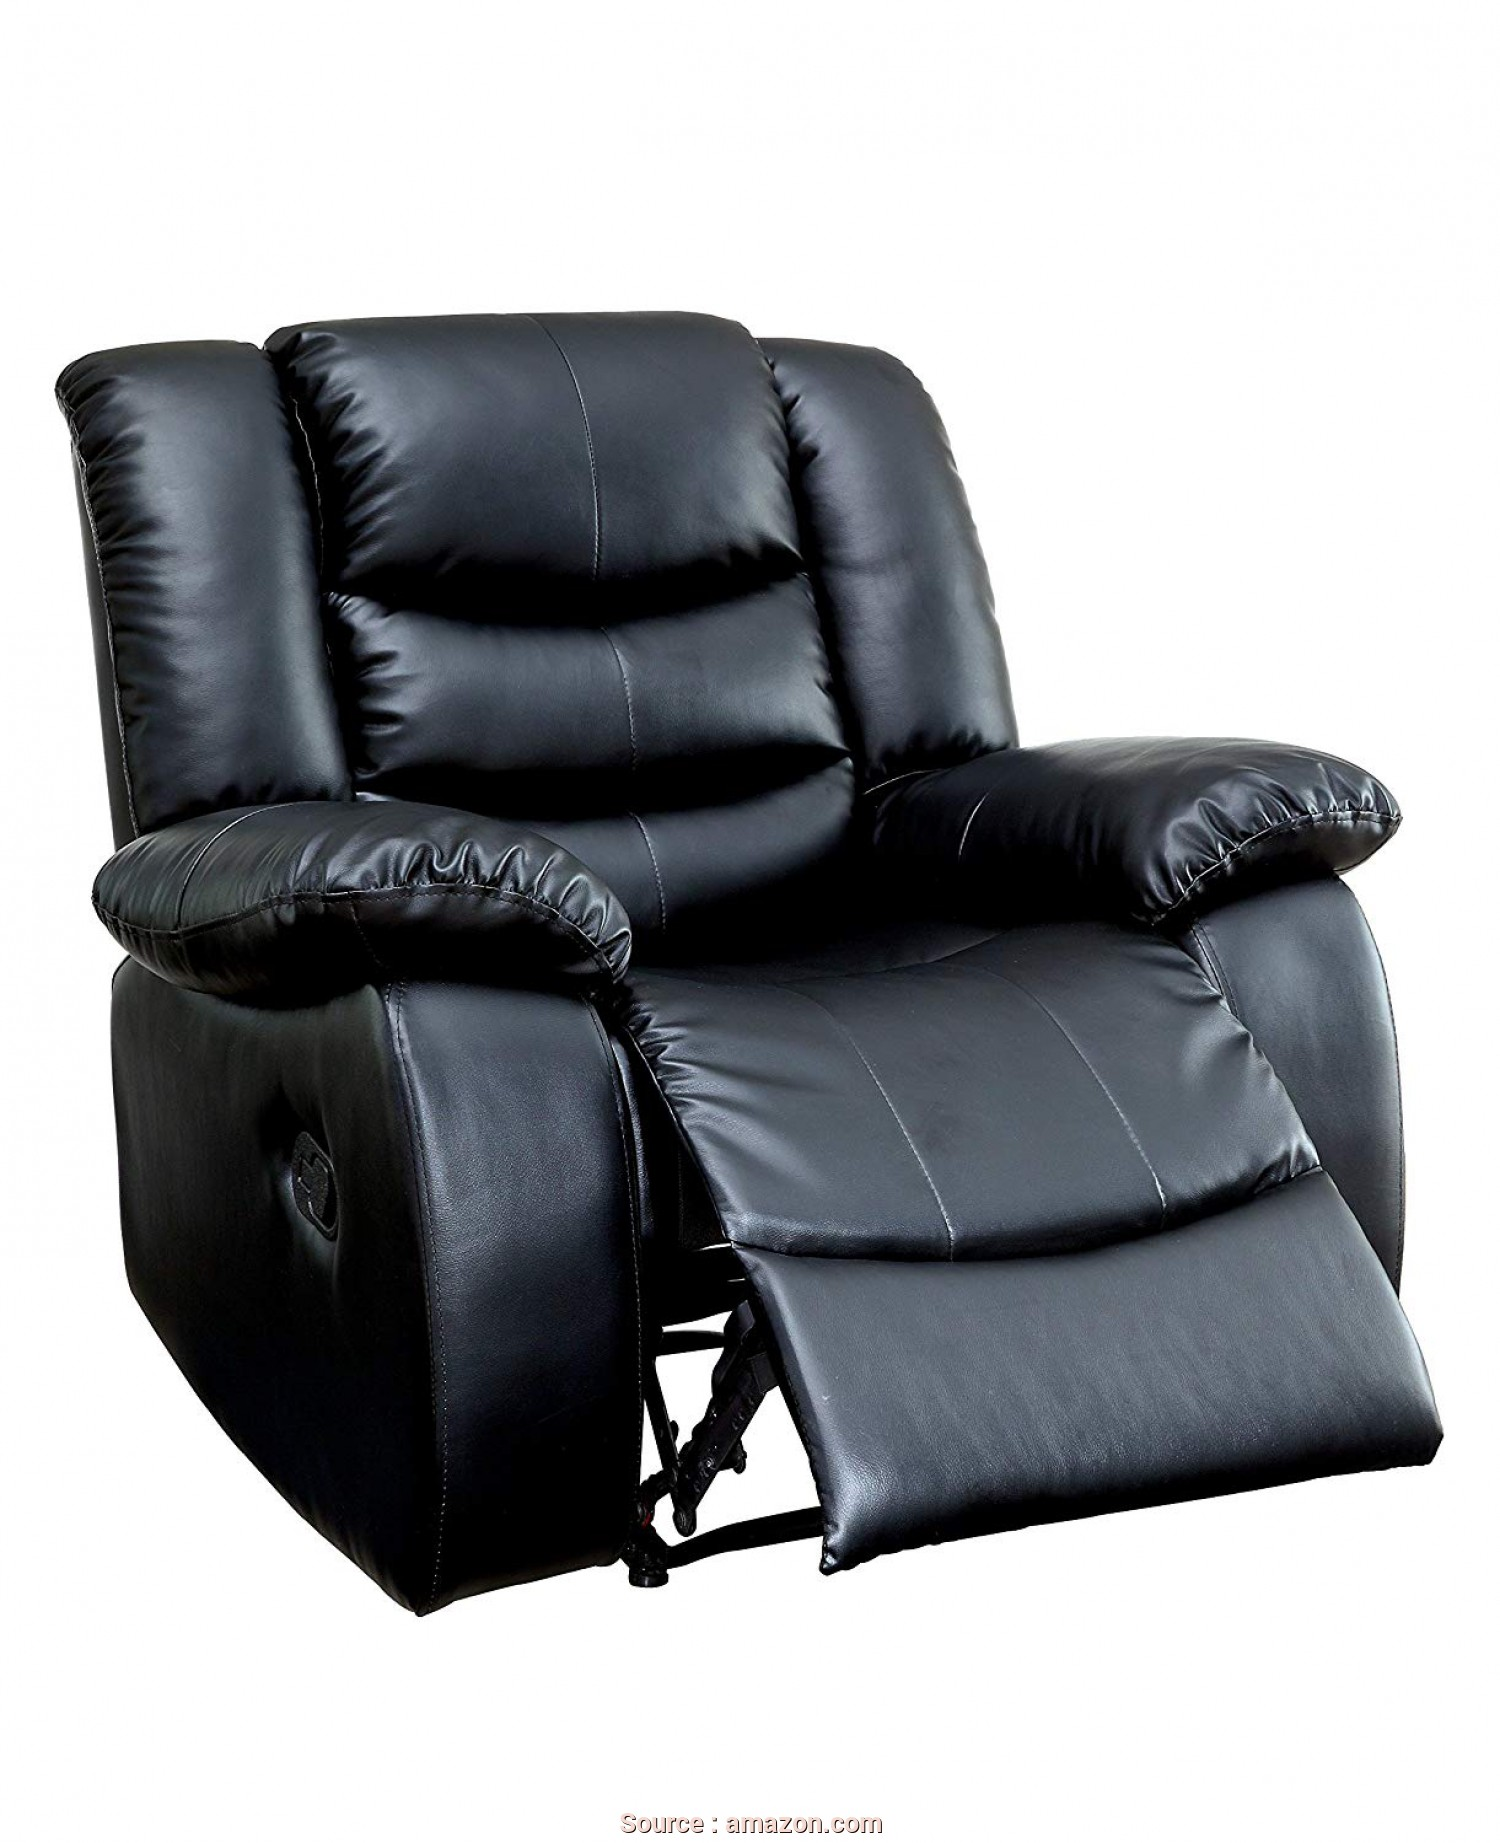 Divano Roma Furniture Relax Reclining Massage Chair, Sbalorditivo Amazon.Com: Furniture Of America Branson Faux Leather Recliner, Black: Kitchen & Dining